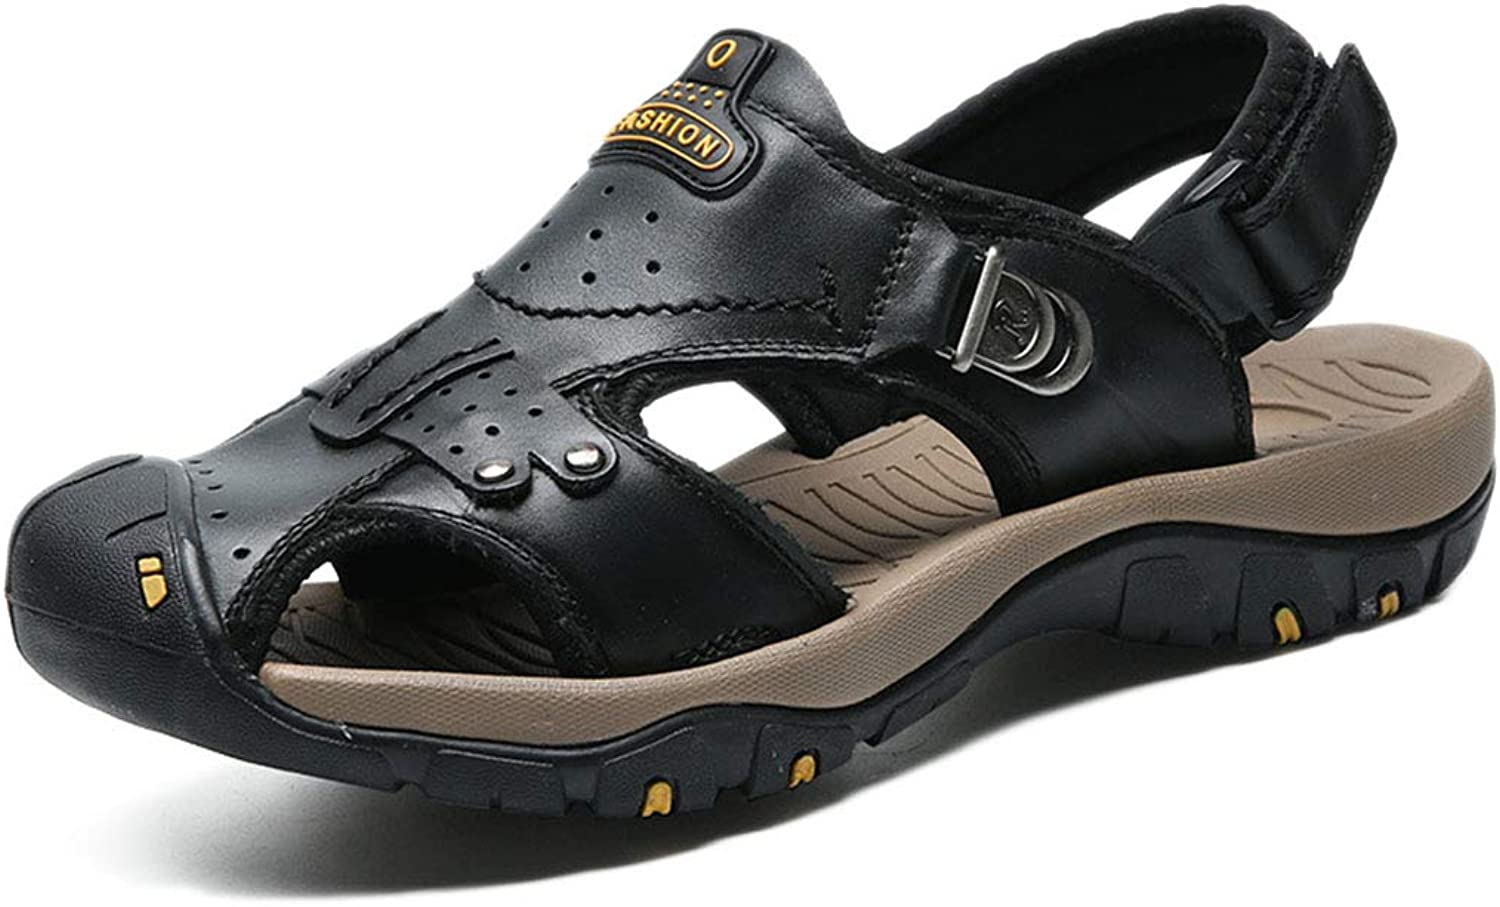 Men's Sports Sandals Summer Walking Adjustable Lightweight Outdoor Sports Mountaineering Baotou Sandals Beach shoes Leather